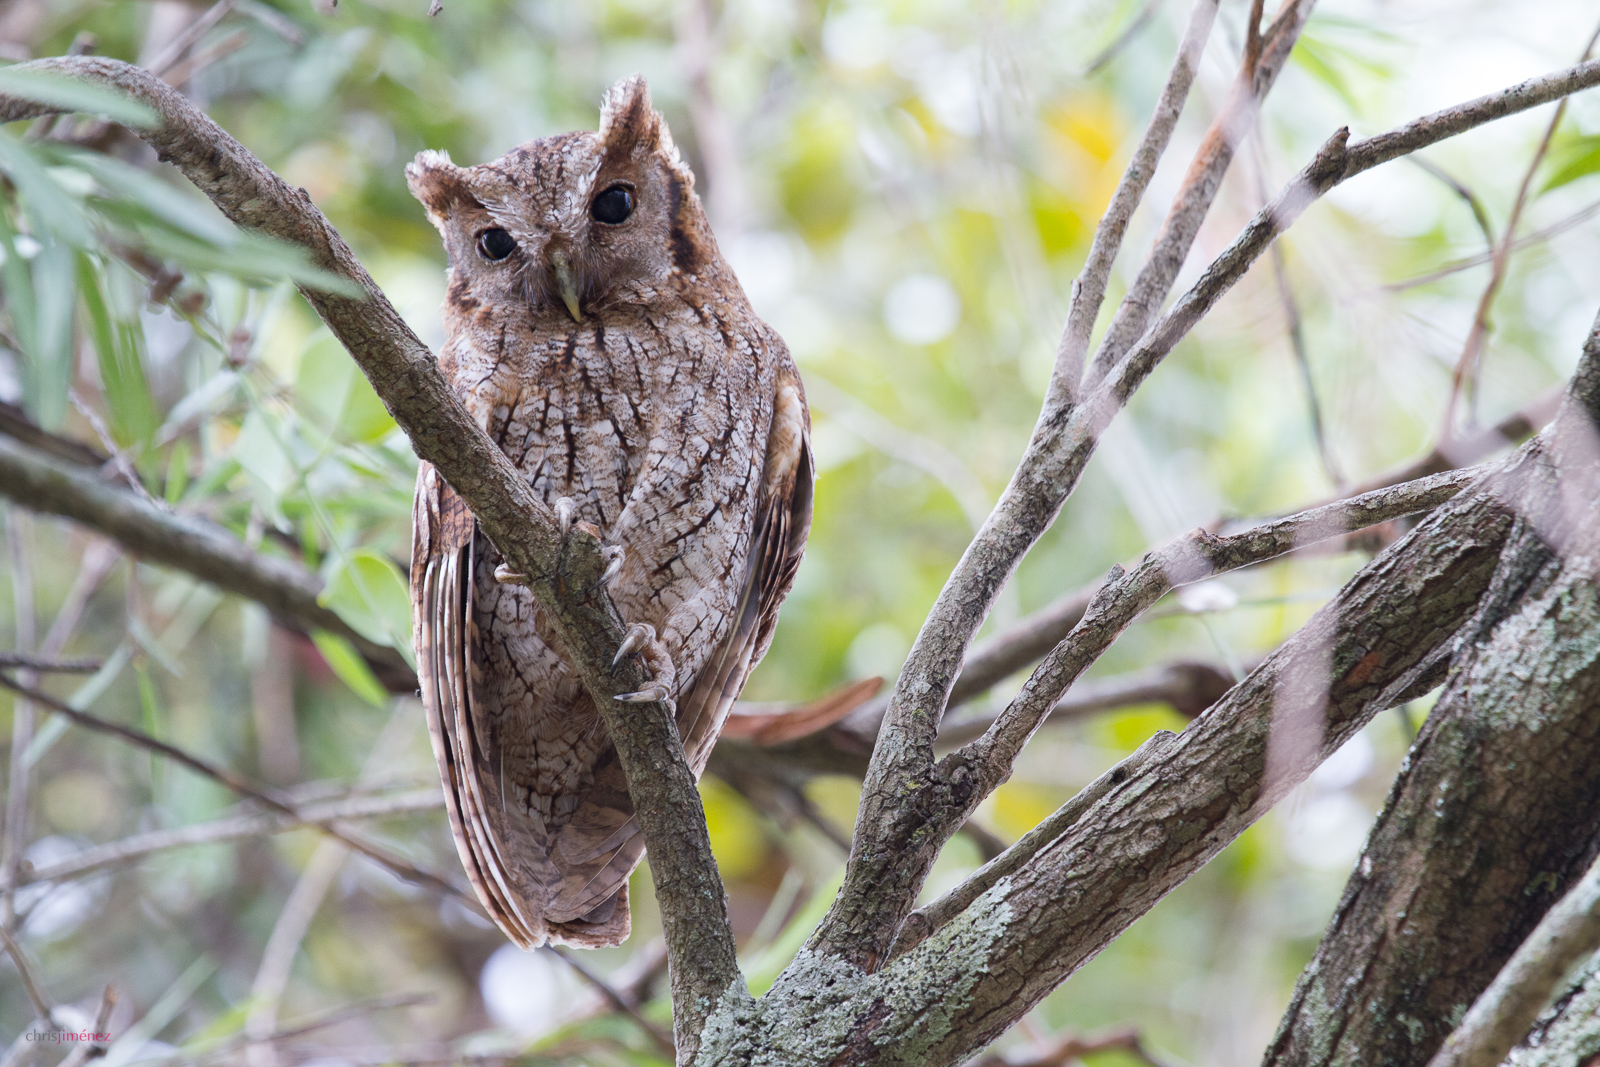 Tropical Screech Owl perched on a branch